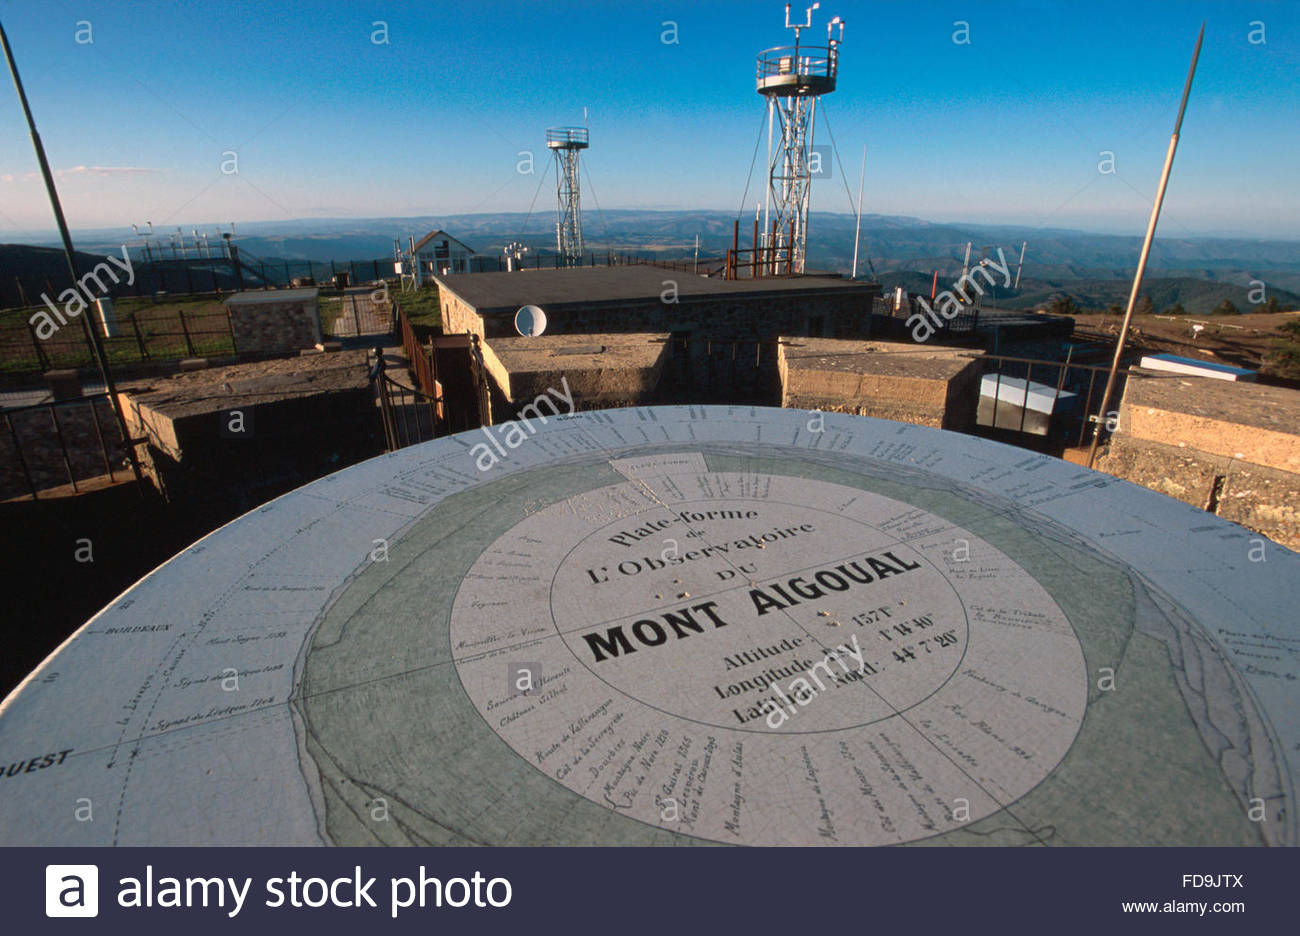 Panoramic table and meteorological station, Mont Aigoual, Lozere - Stock Image